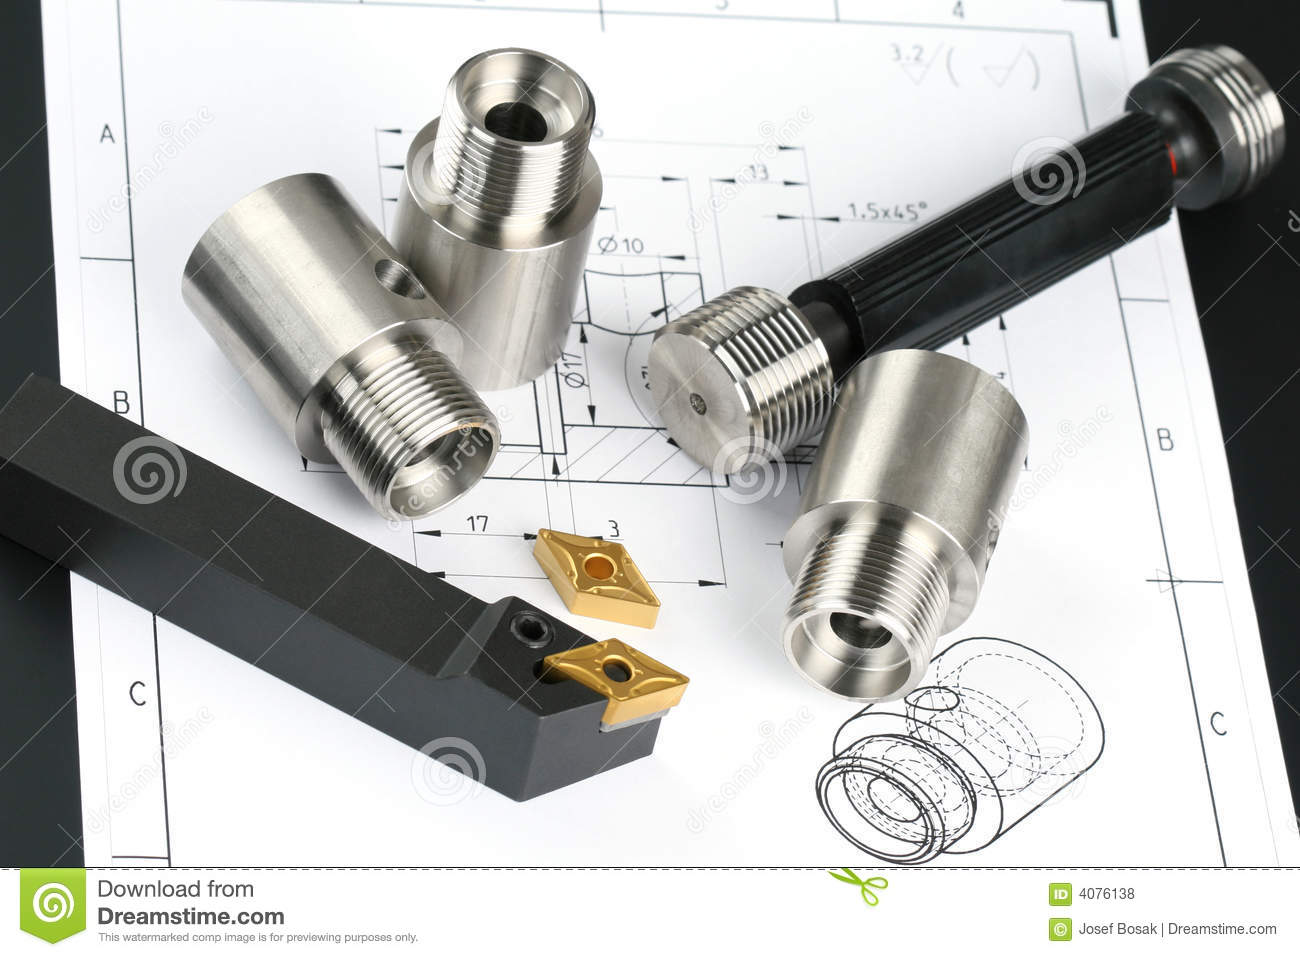 Lathe tool and cutting inserts for turning